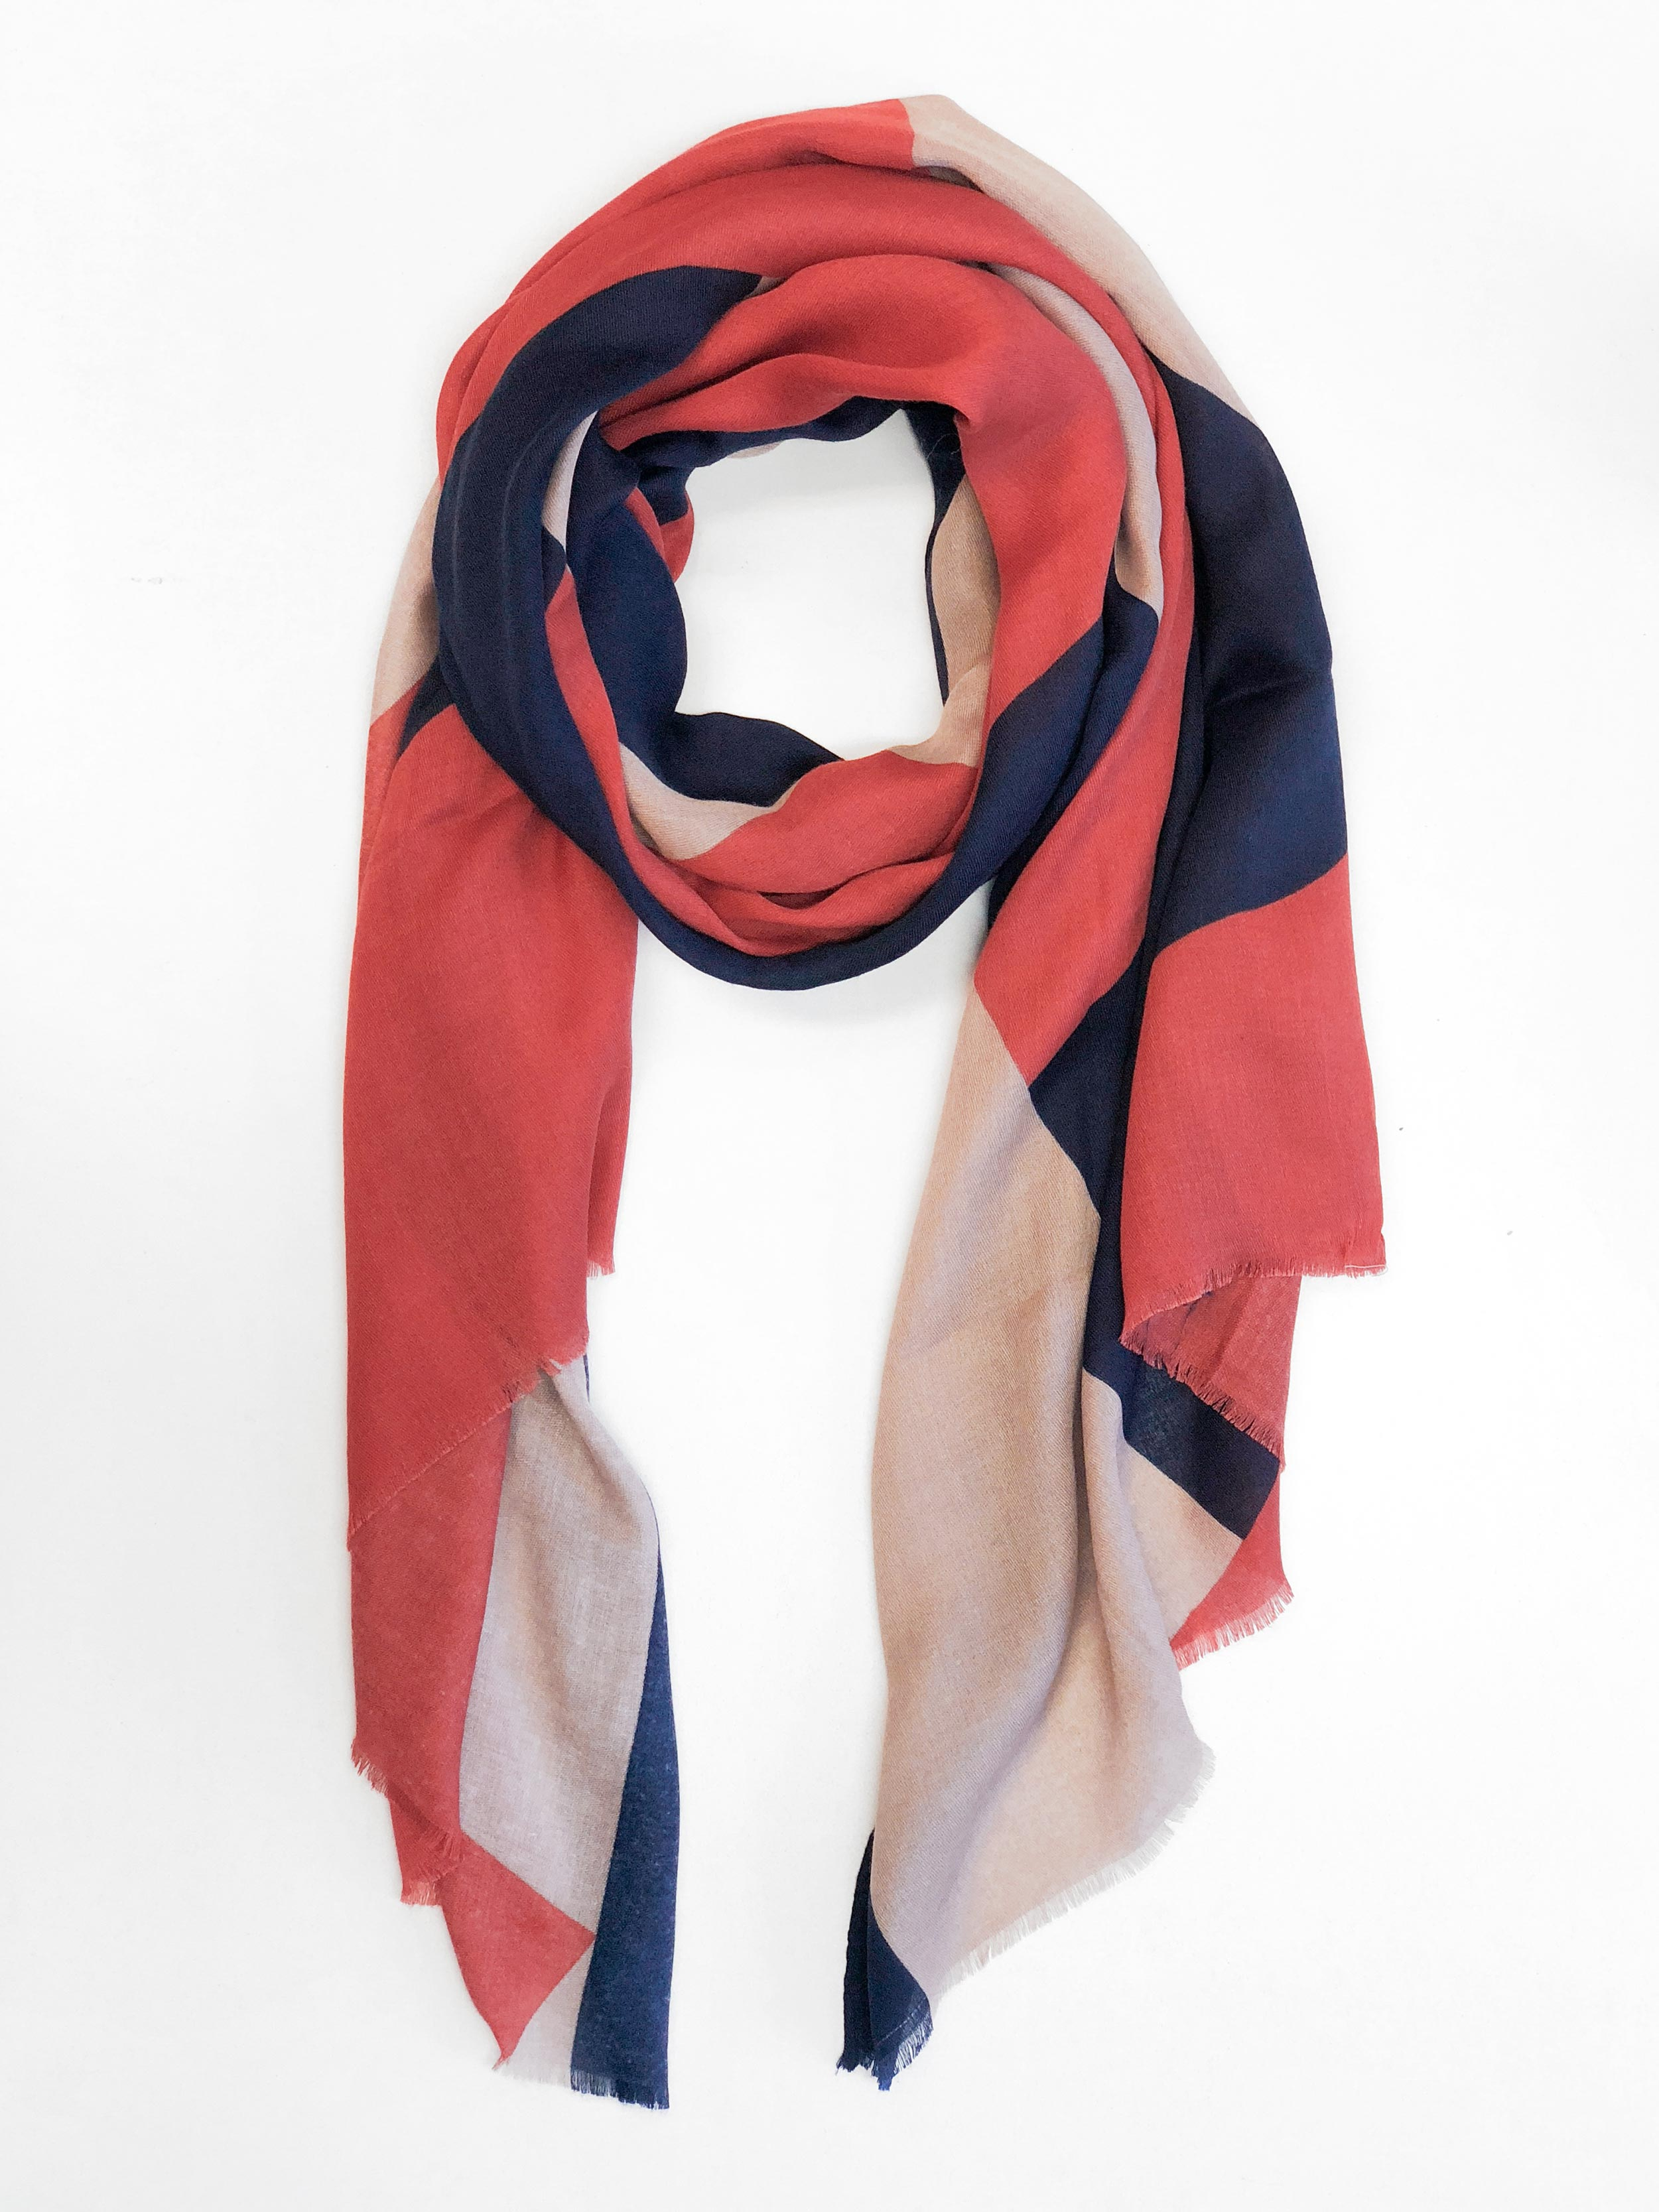 PARIS TO LONDON PRINTED SCARF